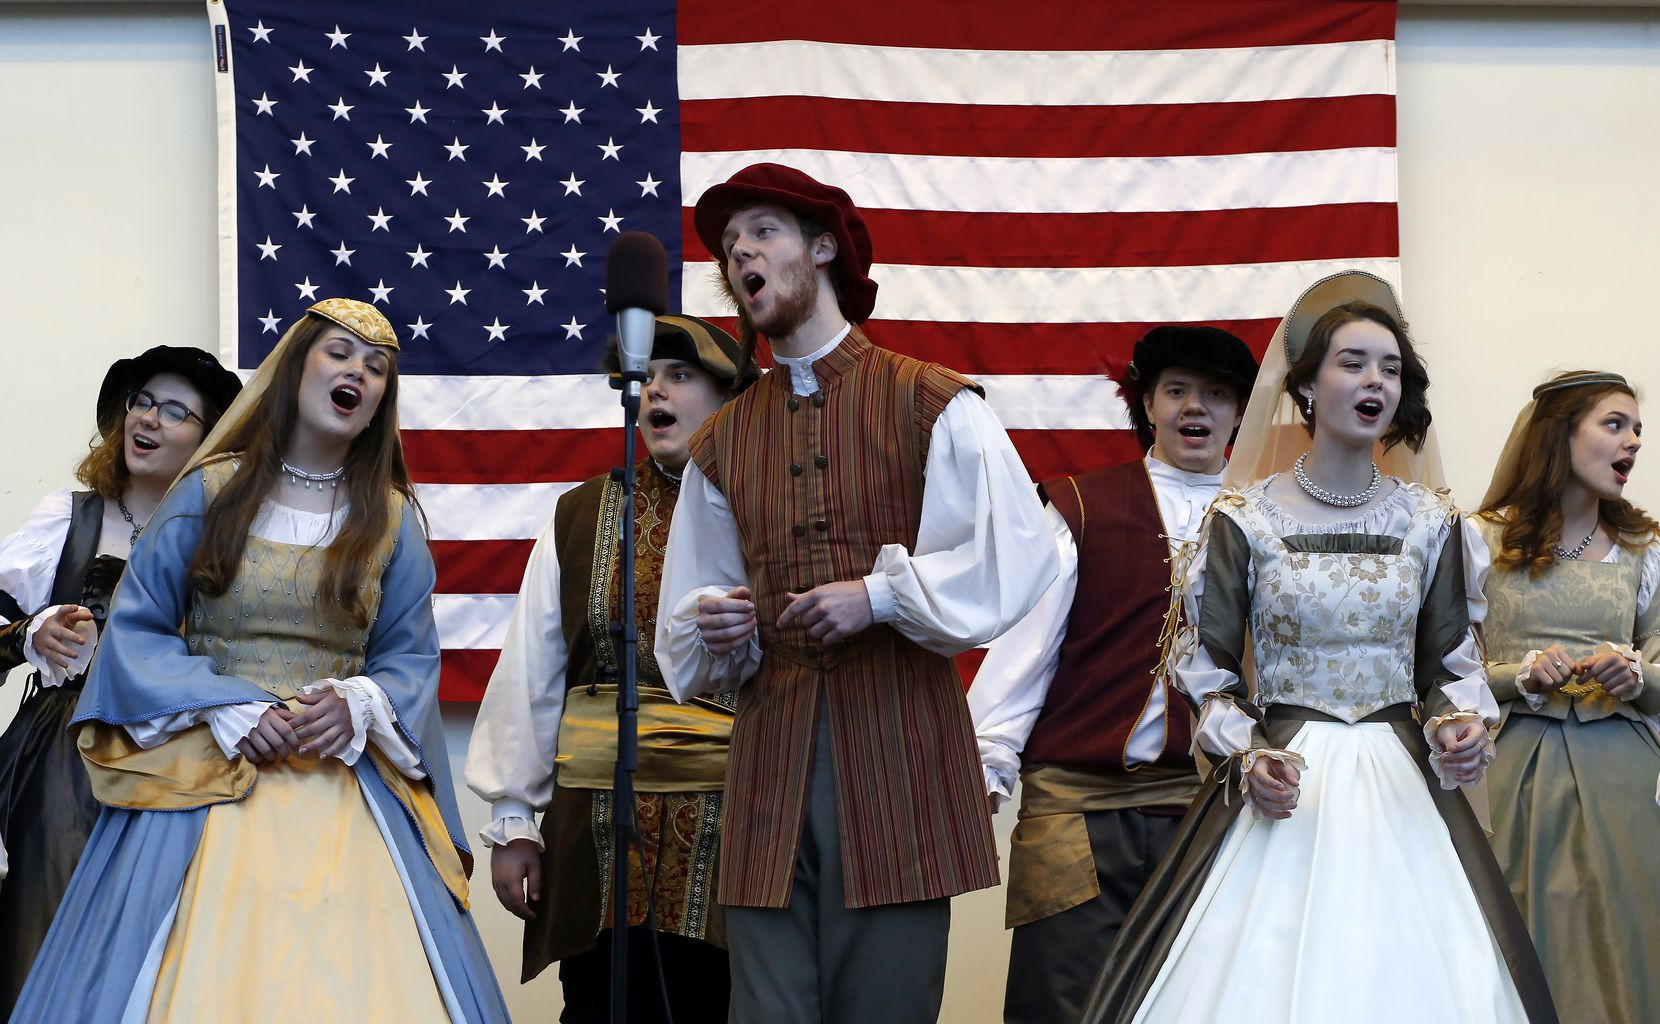 The Dickens in Downtown Plano festival includes carolers in costume.